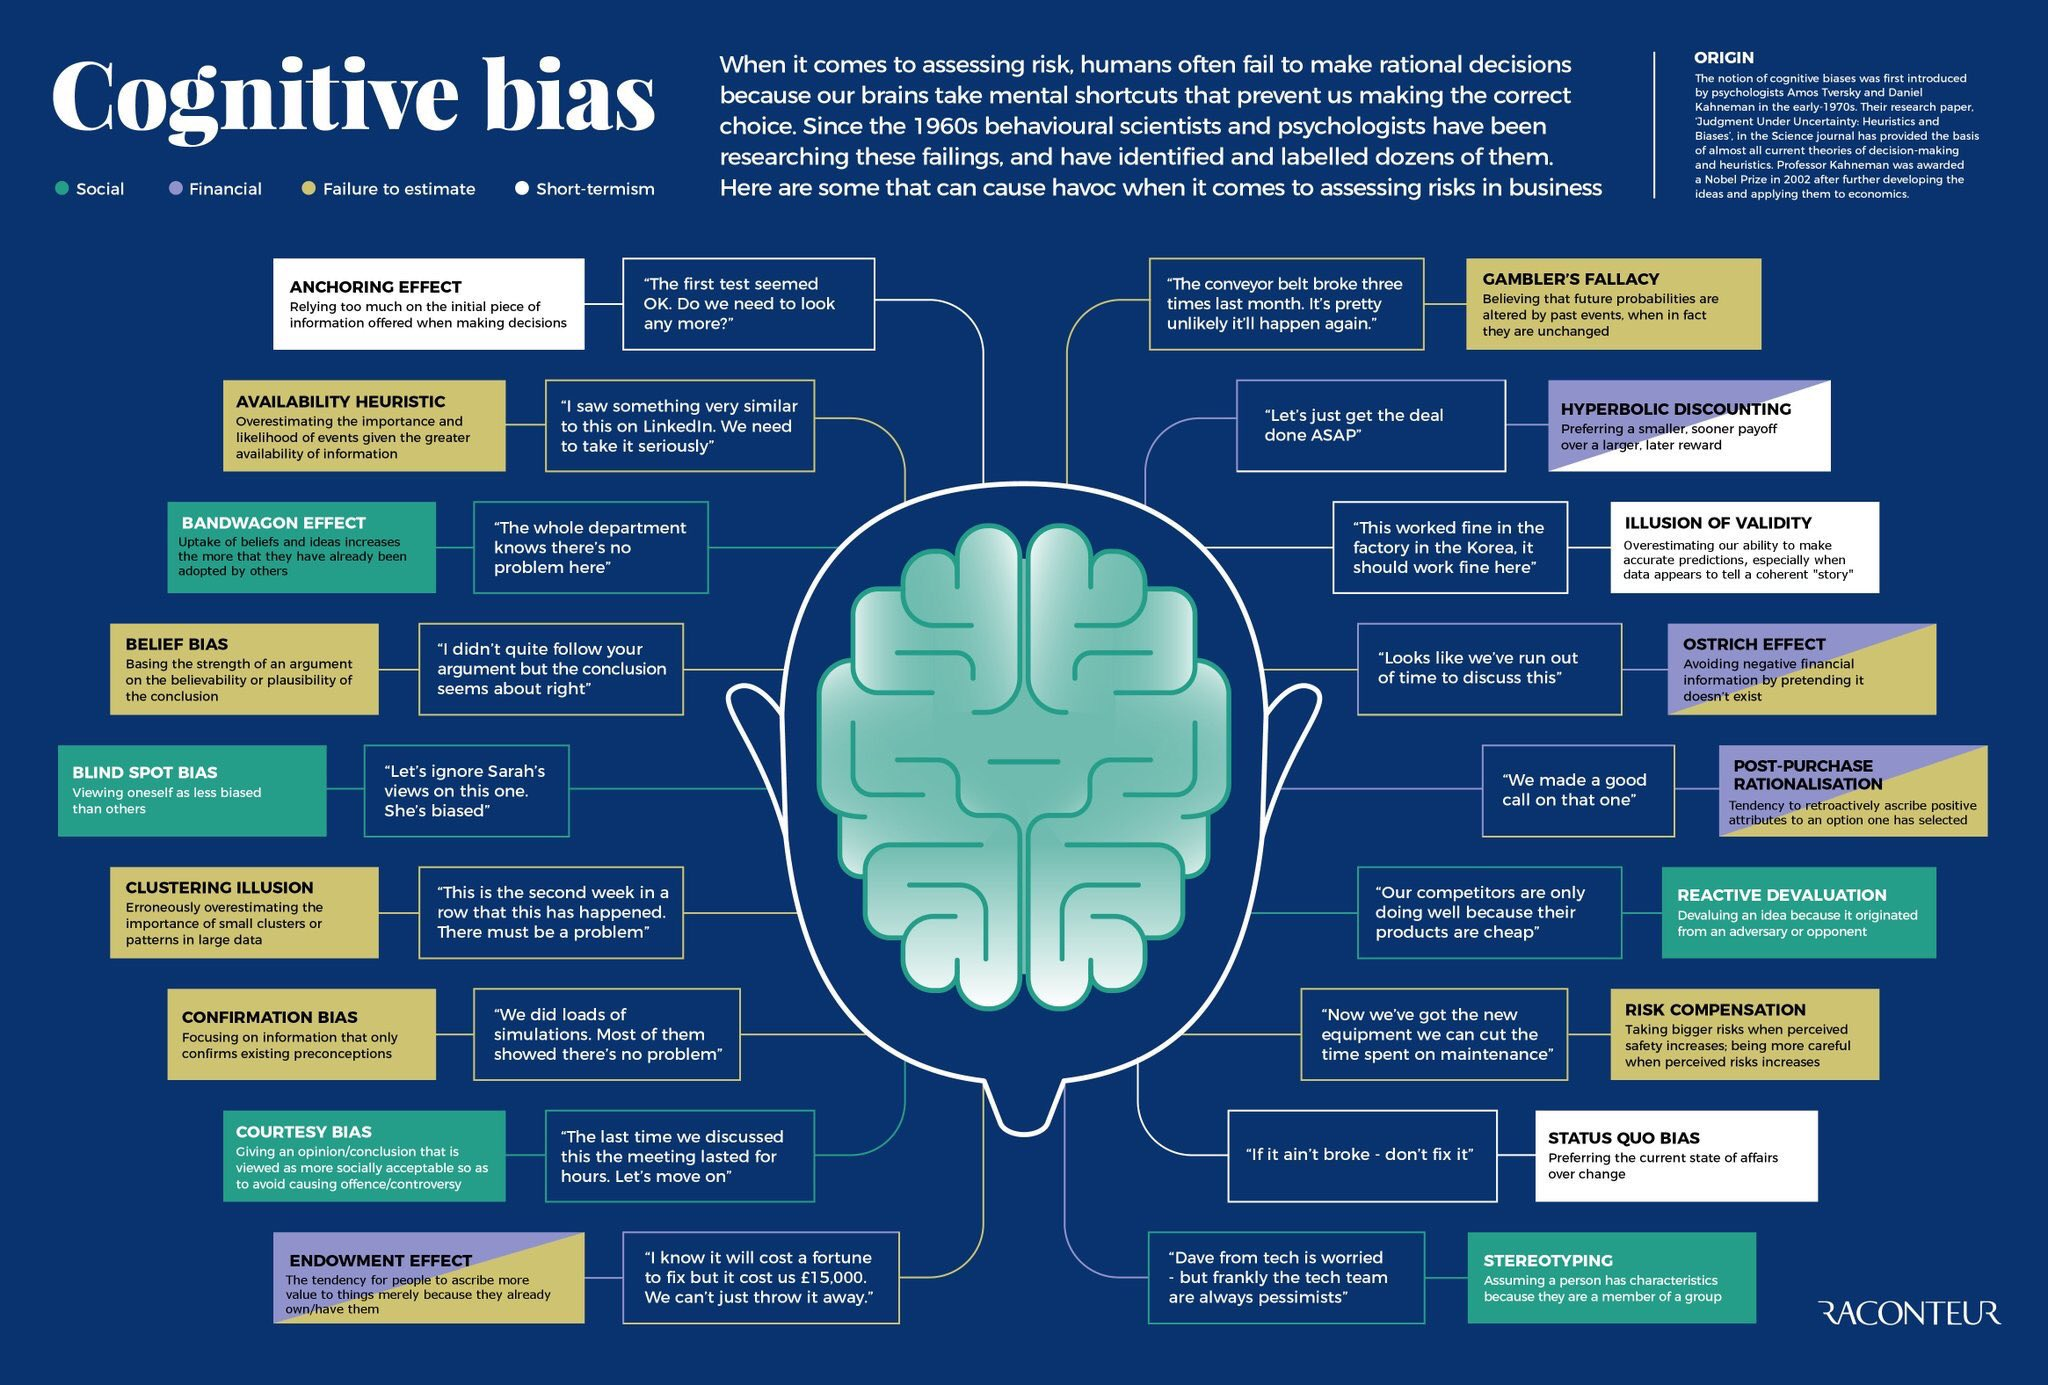 Absolutely fantastic poster outlining cognitive biases. This should be compulsory to study before studying anything else. Or registering on Twitter. Or reading anything. Pls RT https://t.co/P30VgbwJyf